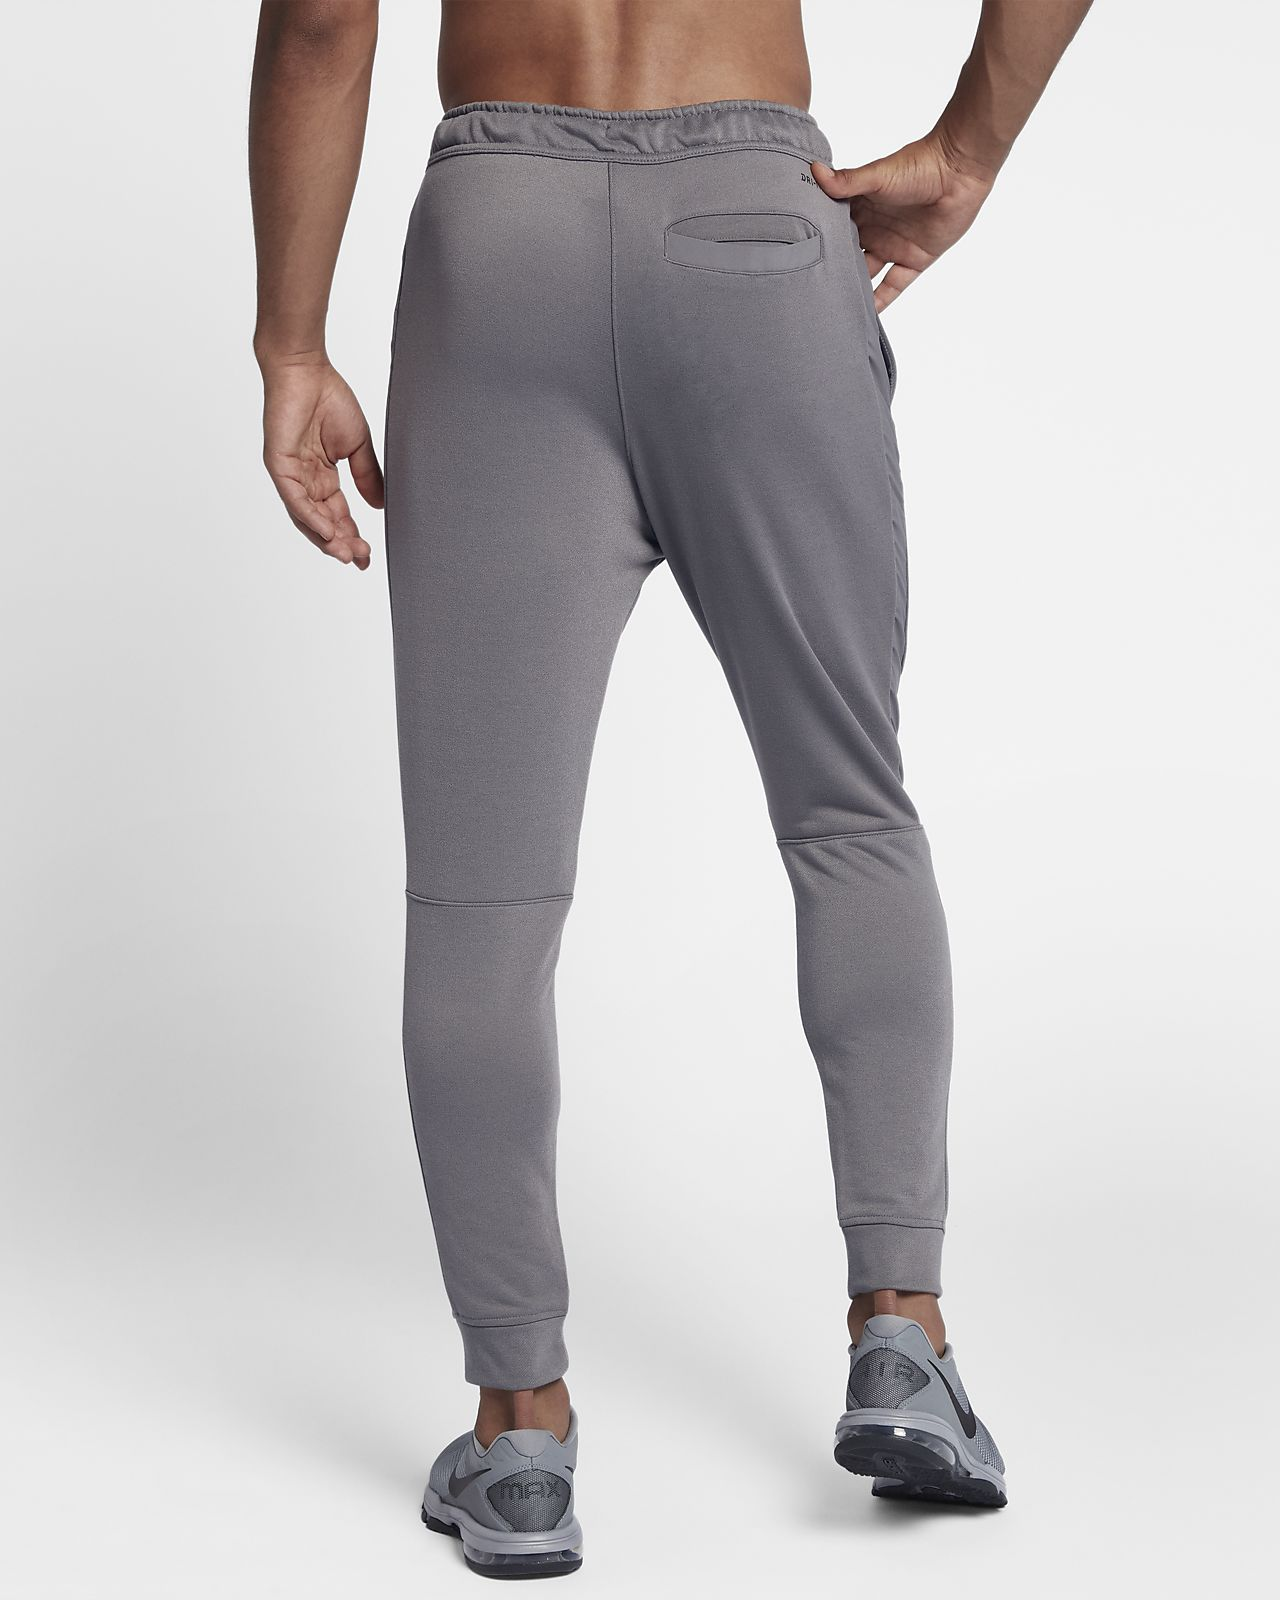 Find fitted sweatpants mens at ShopStyle. Shop the latest collection of fitted sweatpants mens from the most popular stores - all in one place.